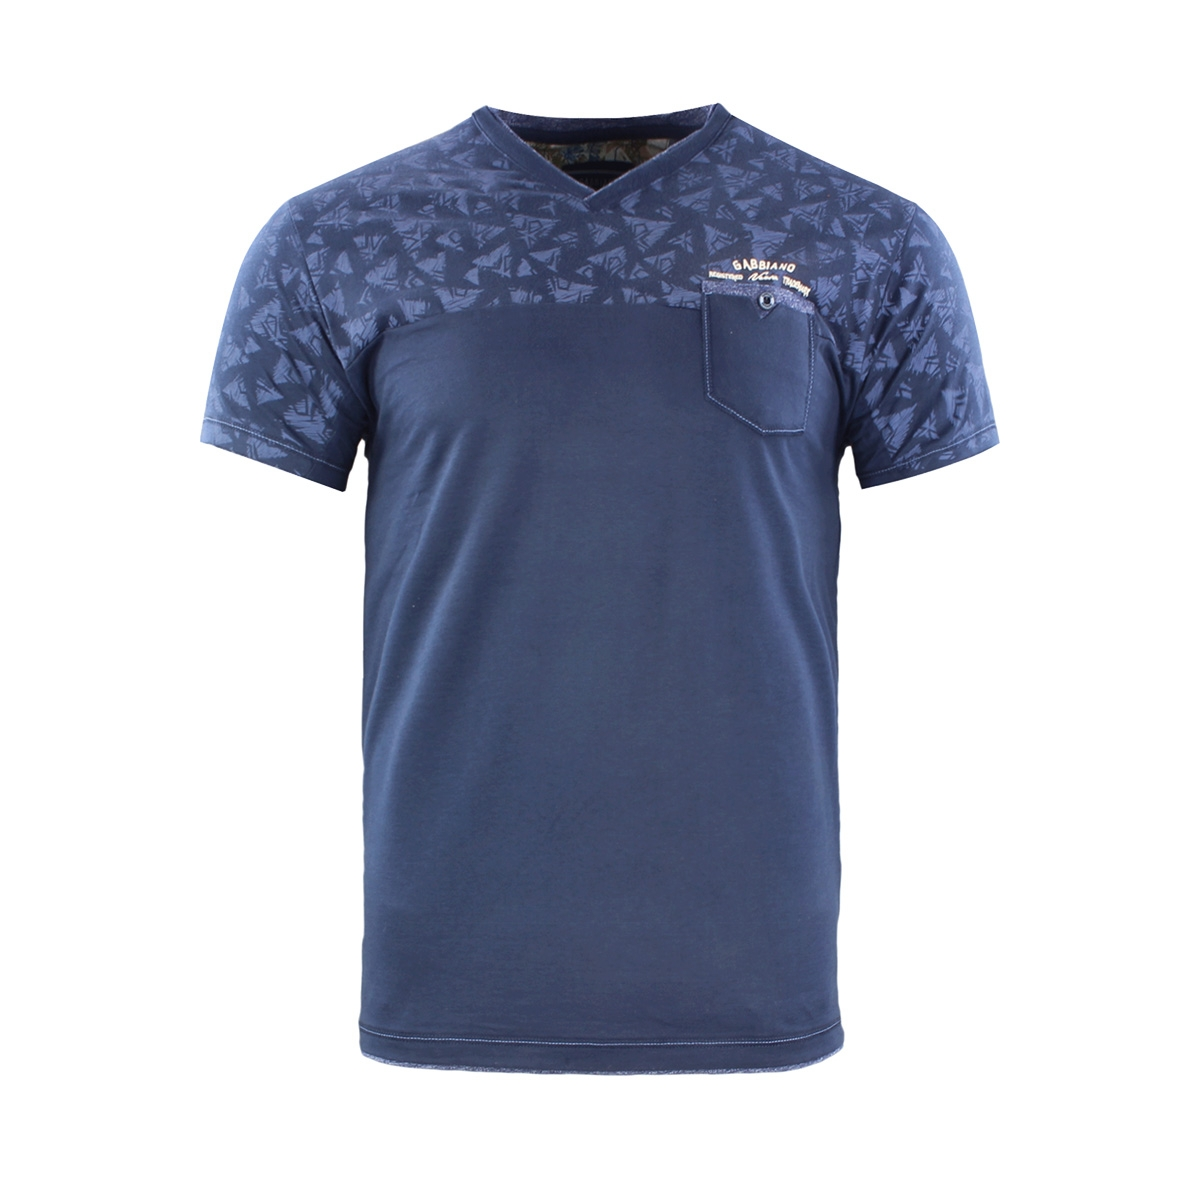 t shirt 15177 gabbiano t-shirt navy